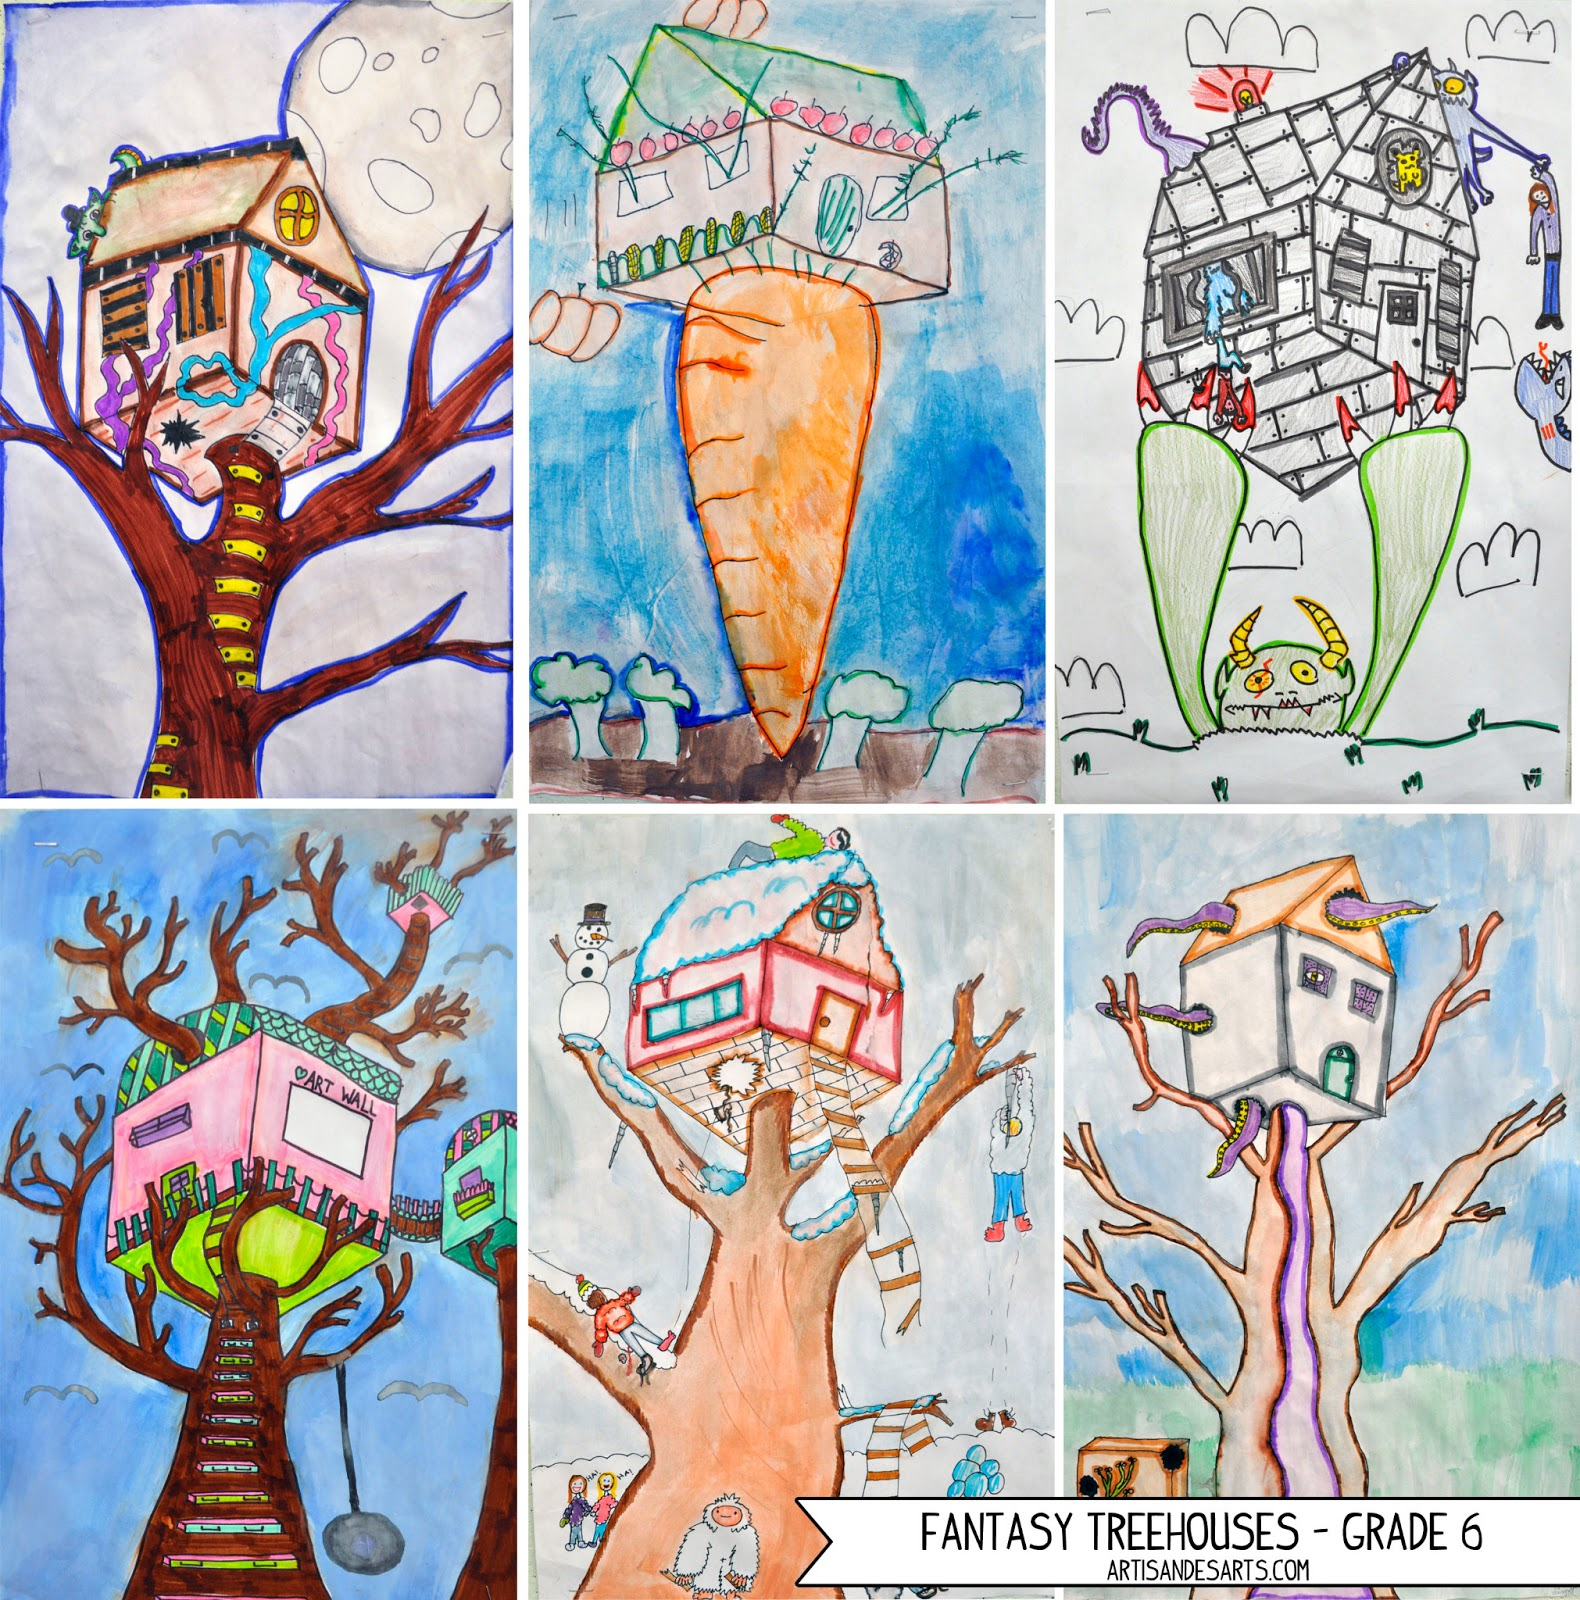 Artisan Des Arts 2 Point Perspective Fantasy Treehouses